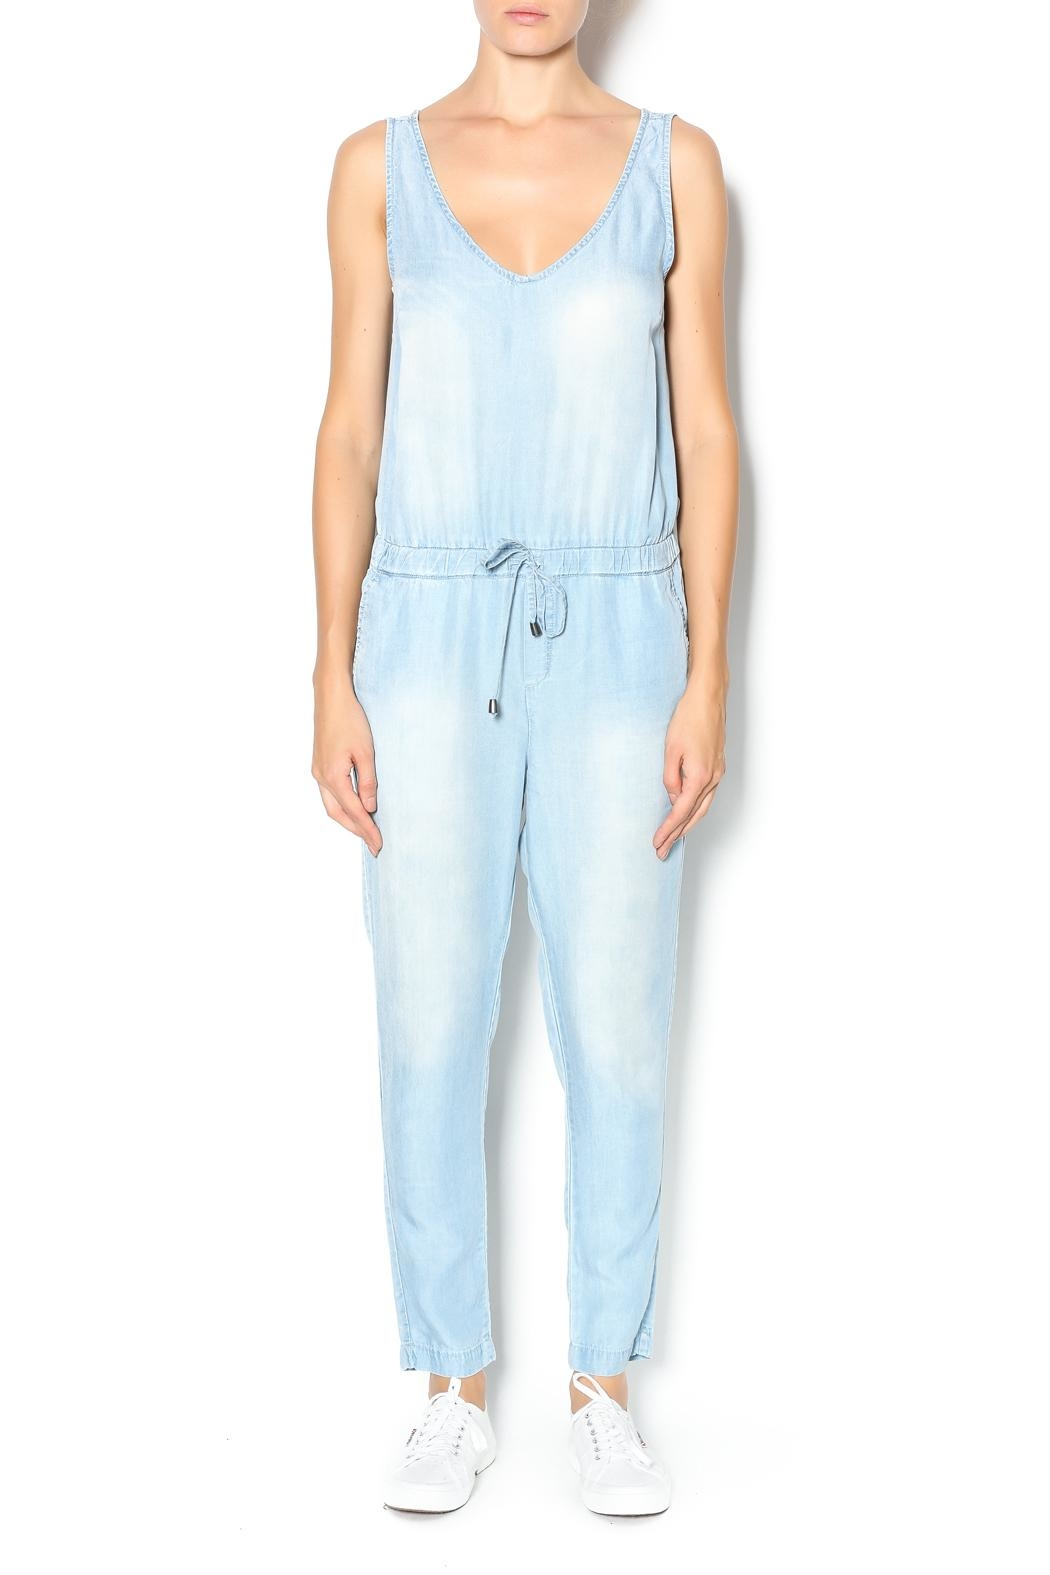 Velvet Heart Denim Jumpsuit - Main Image